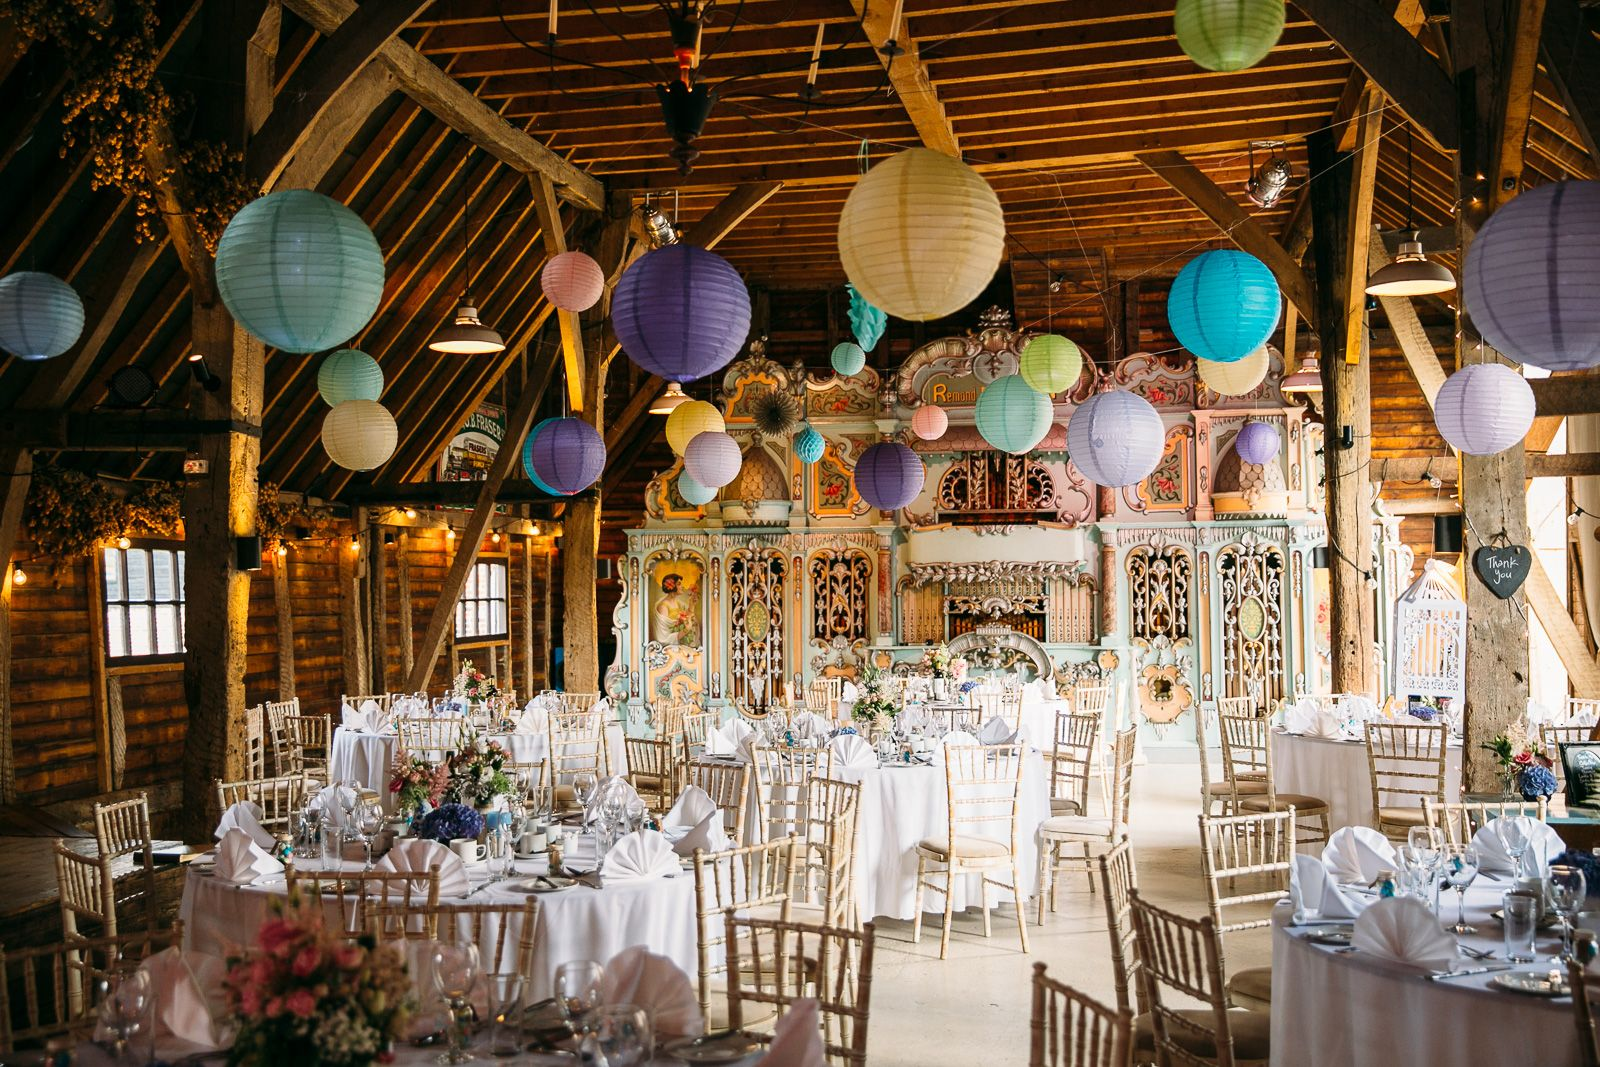 Our Barn For Wedding Ceremonies Grade II Listed And Dating Back To 1750